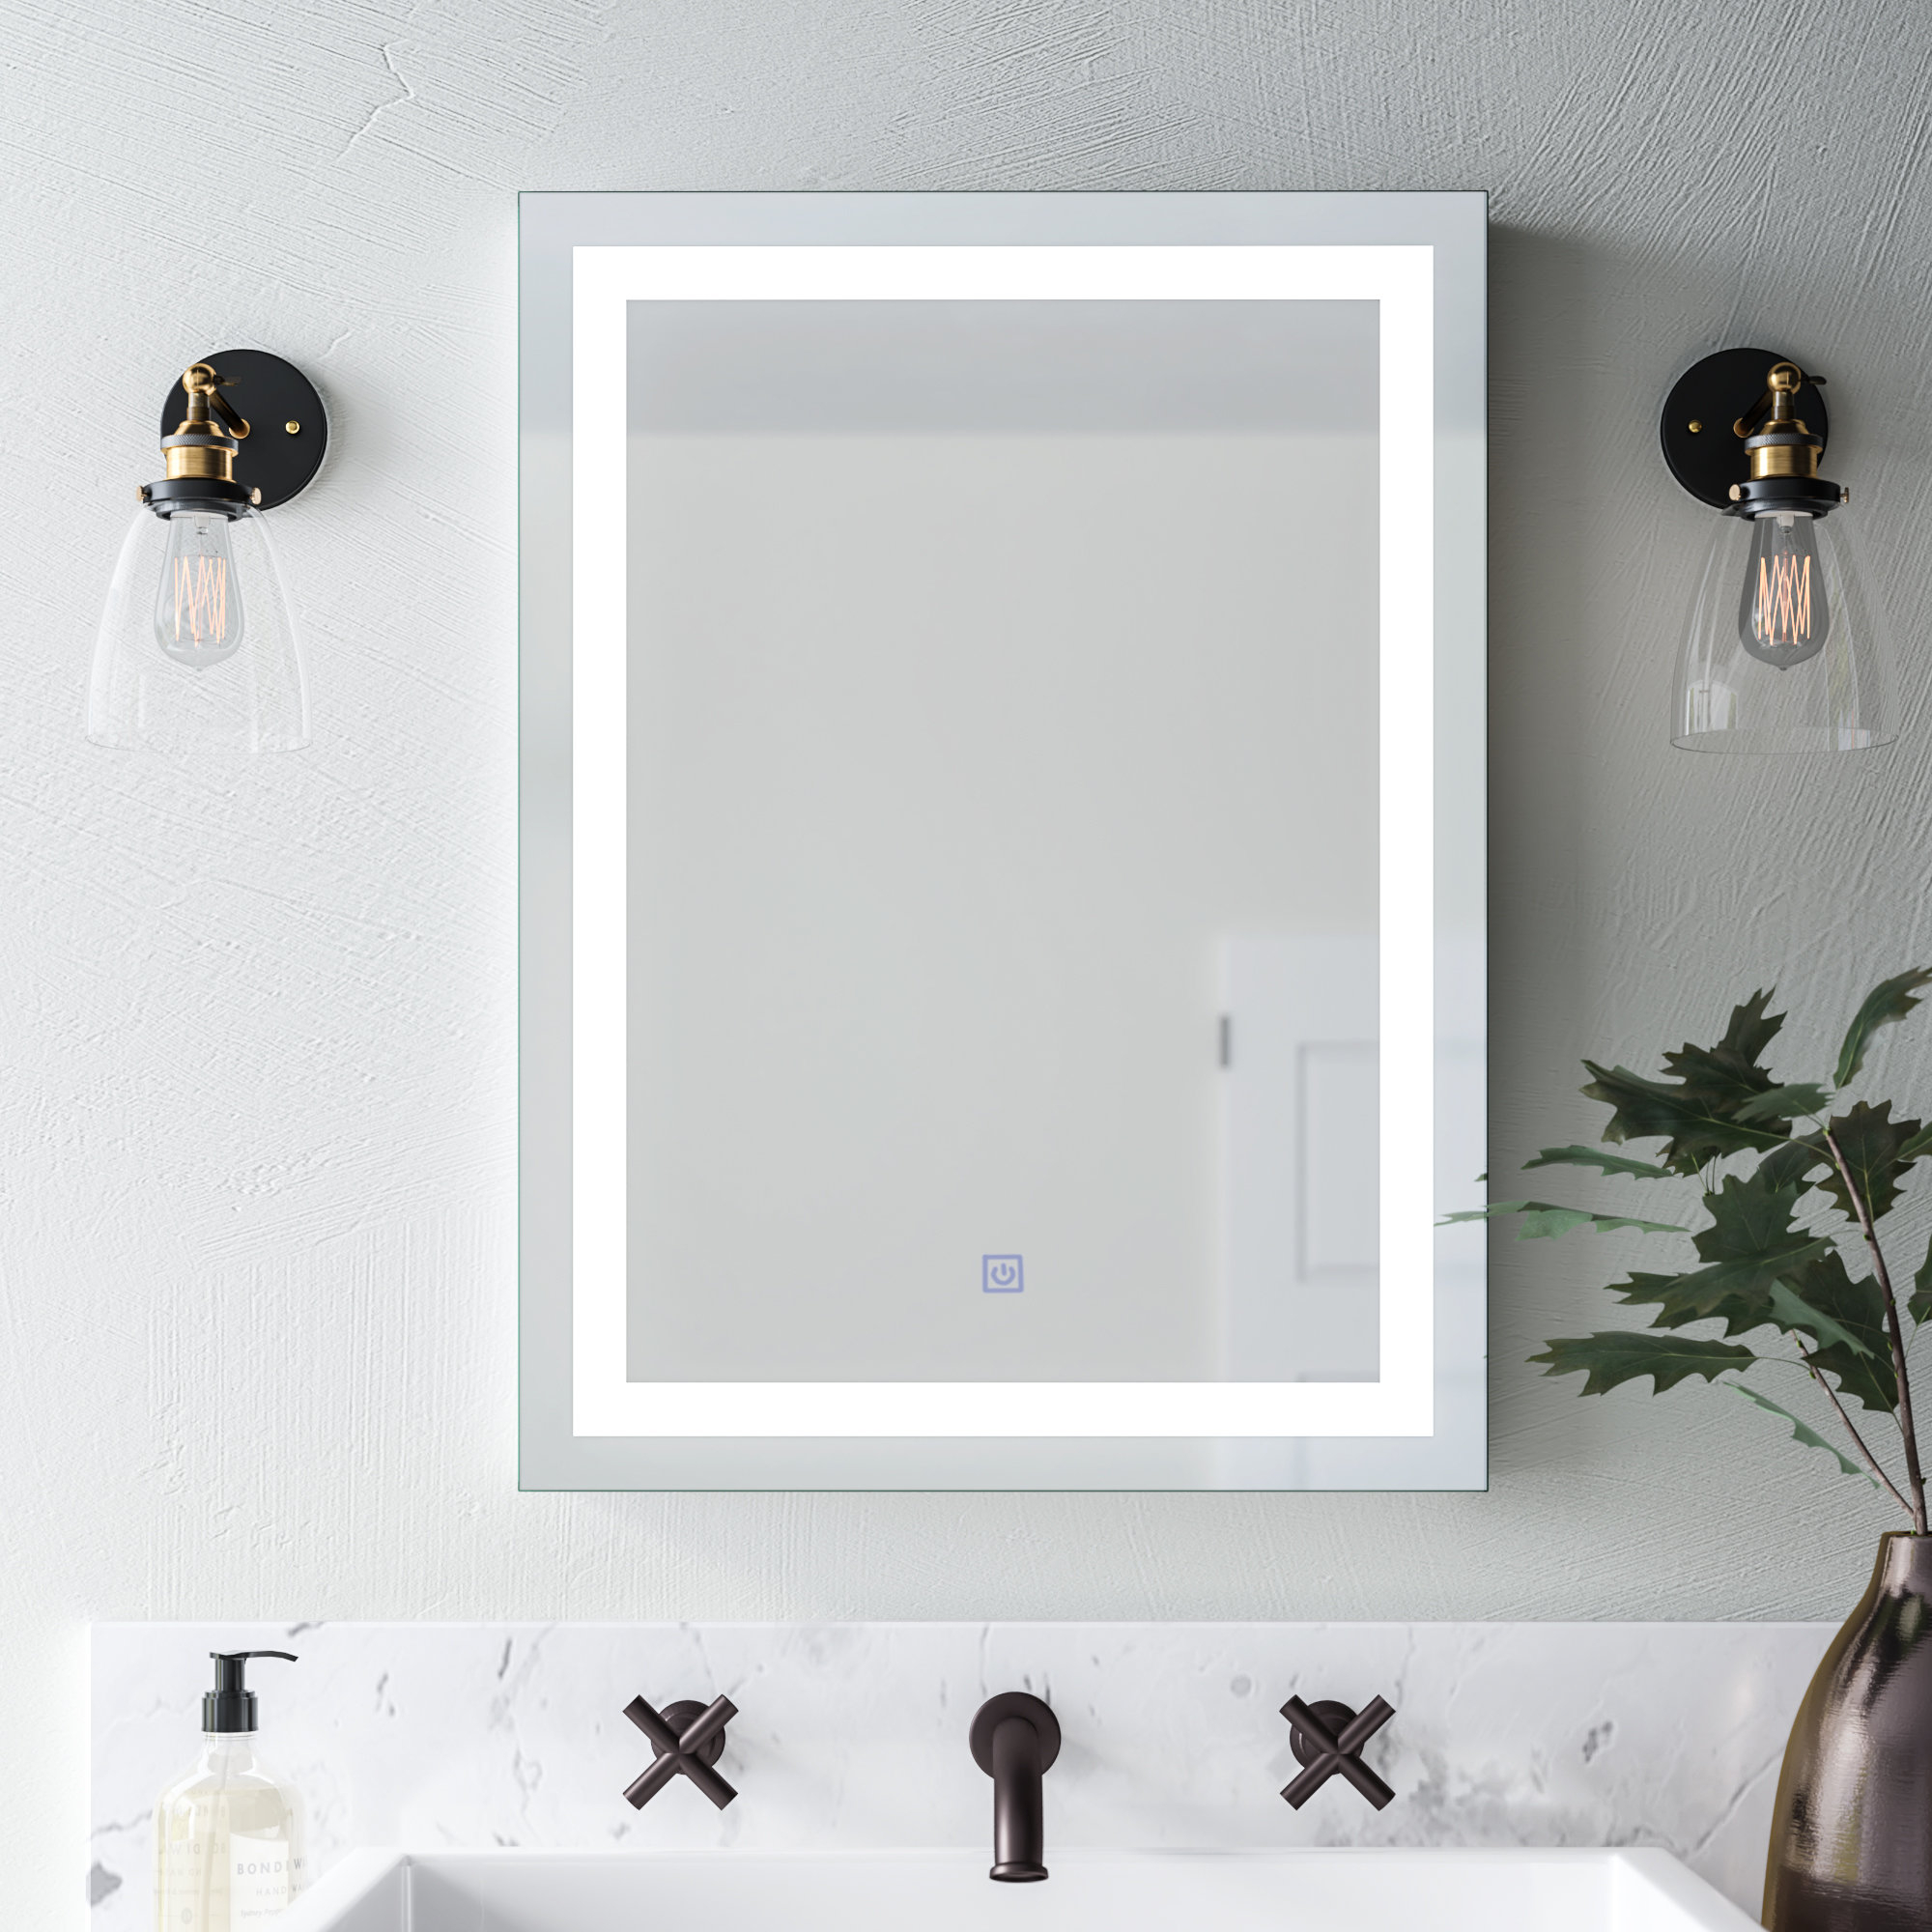 Butcher Illuminated Modern & Contemporary Bathroom Wall Mirror Intended For Mexborough Bathroom/vanity Mirrors (Image 3 of 20)